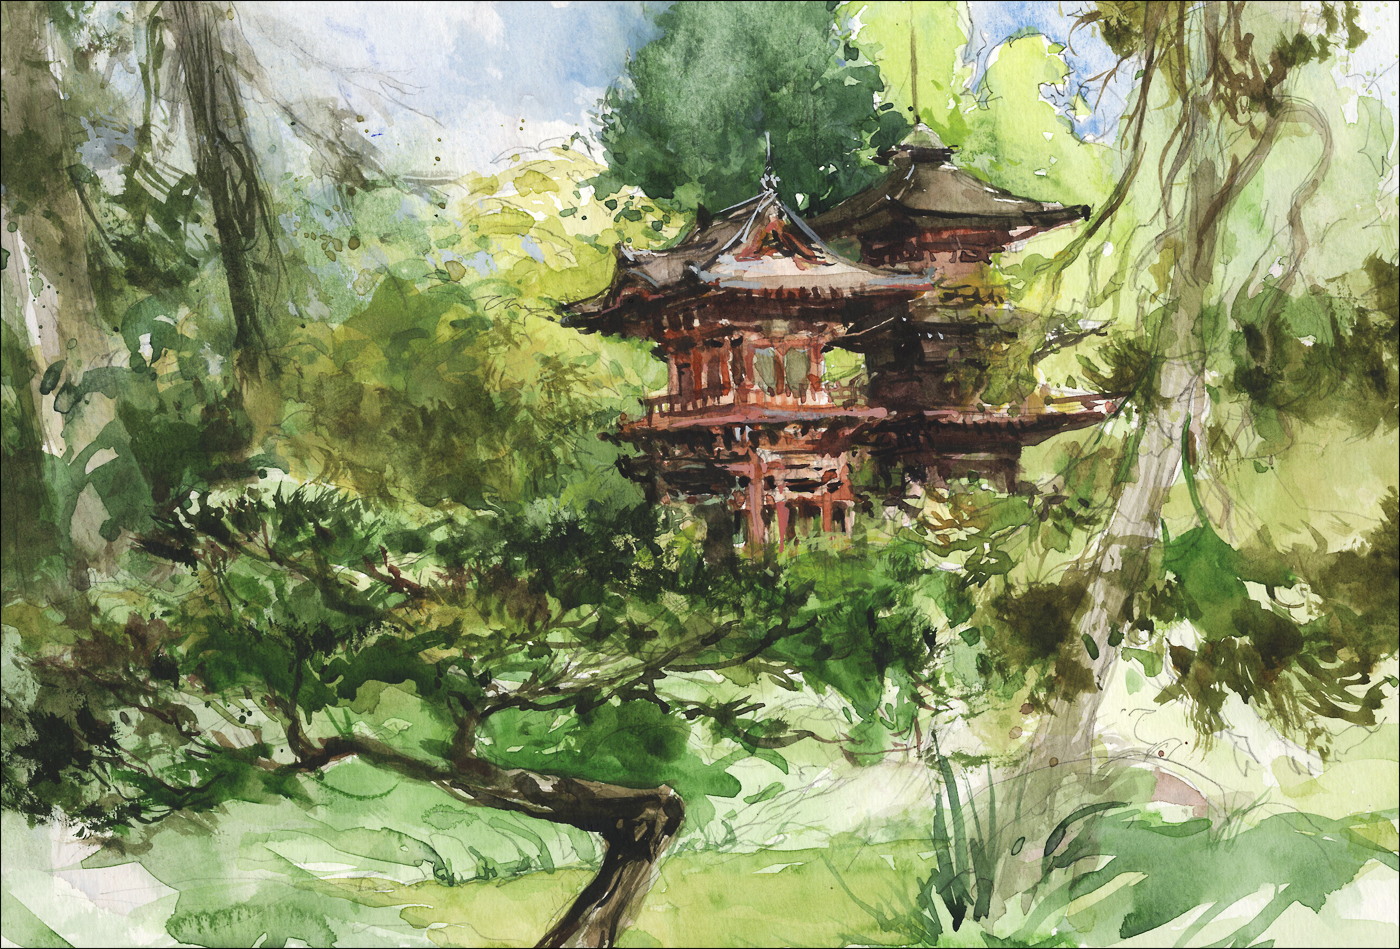 Anime Asian Jungle Girl Wallpaper Japanese Garden Golden Gate Park Citizen Sketcher